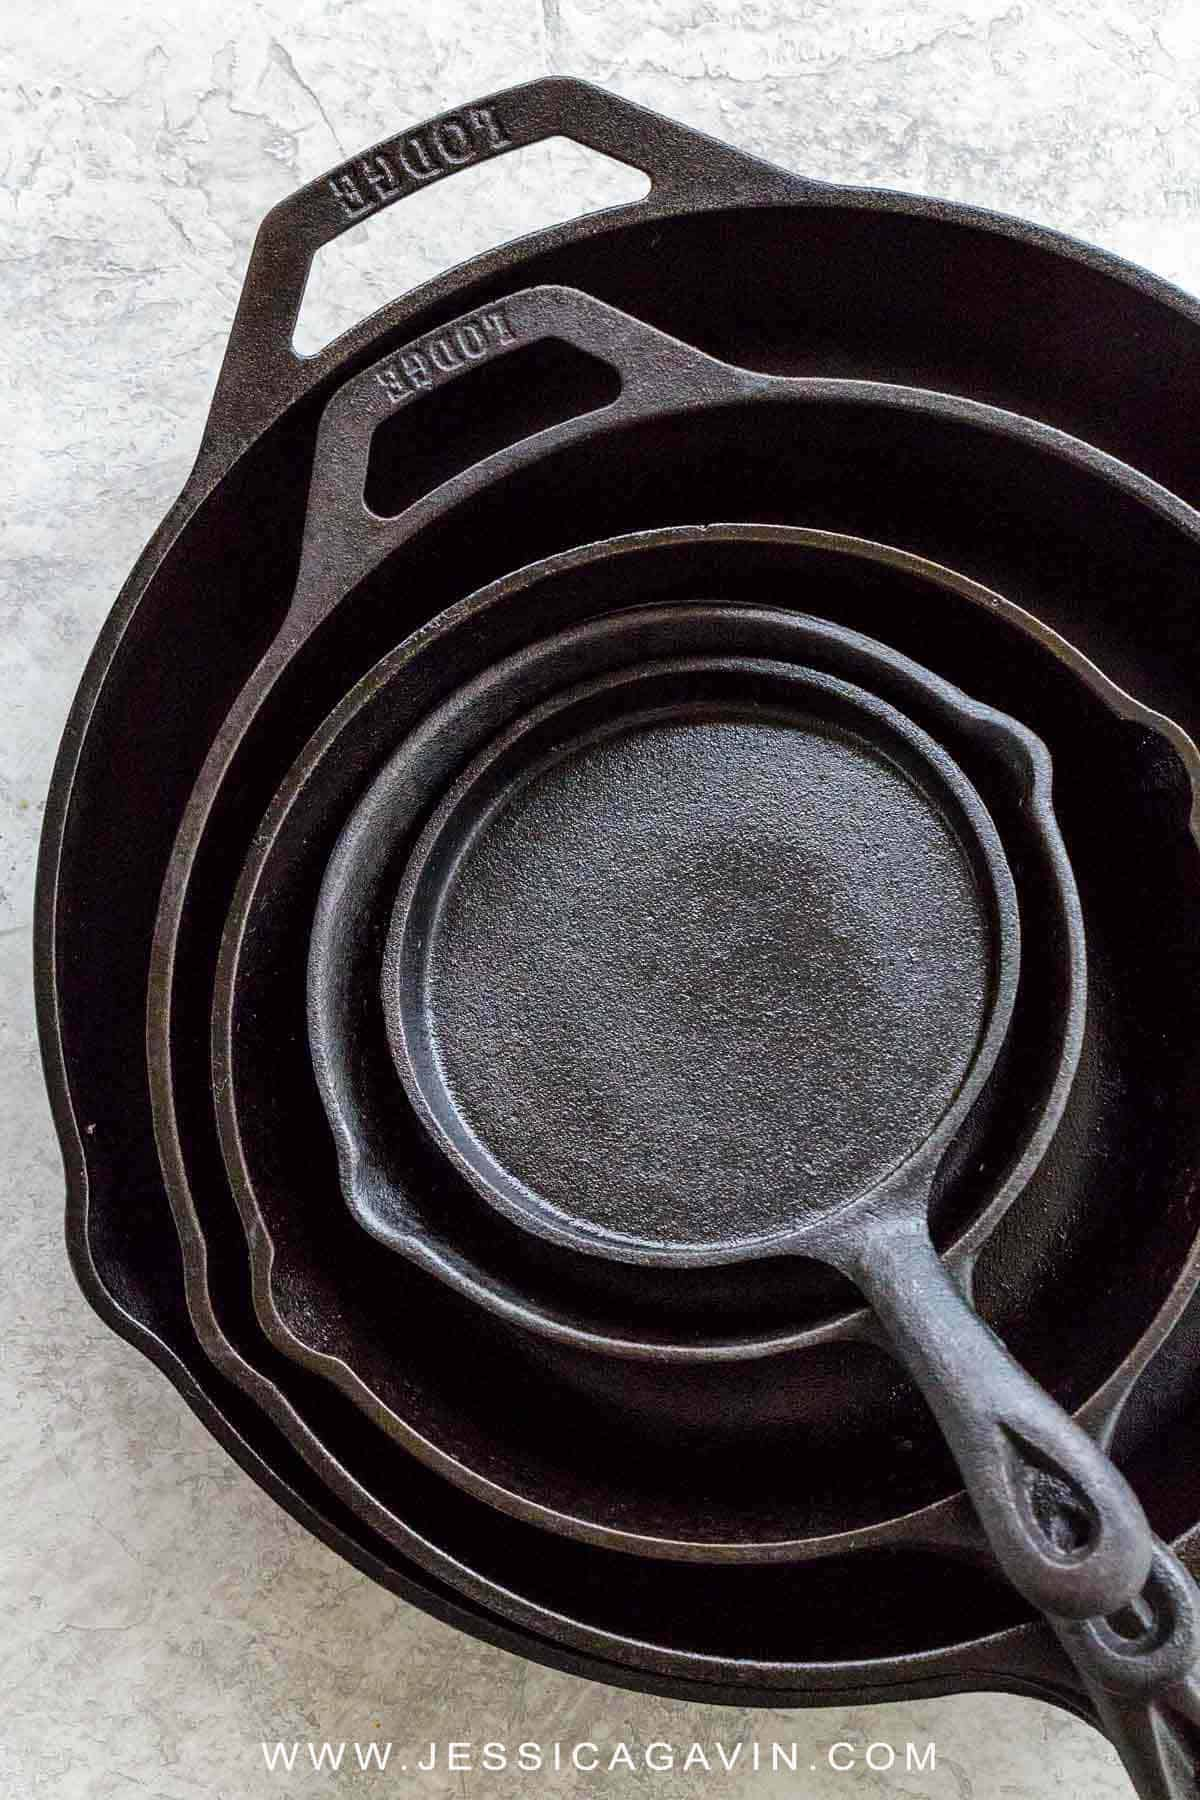 The cast iron skillet is a workhorse in the kitchen, here's a guide to cooking, cleaning, and how to season this durable and versatile tool. #castiron #skillet #cookware